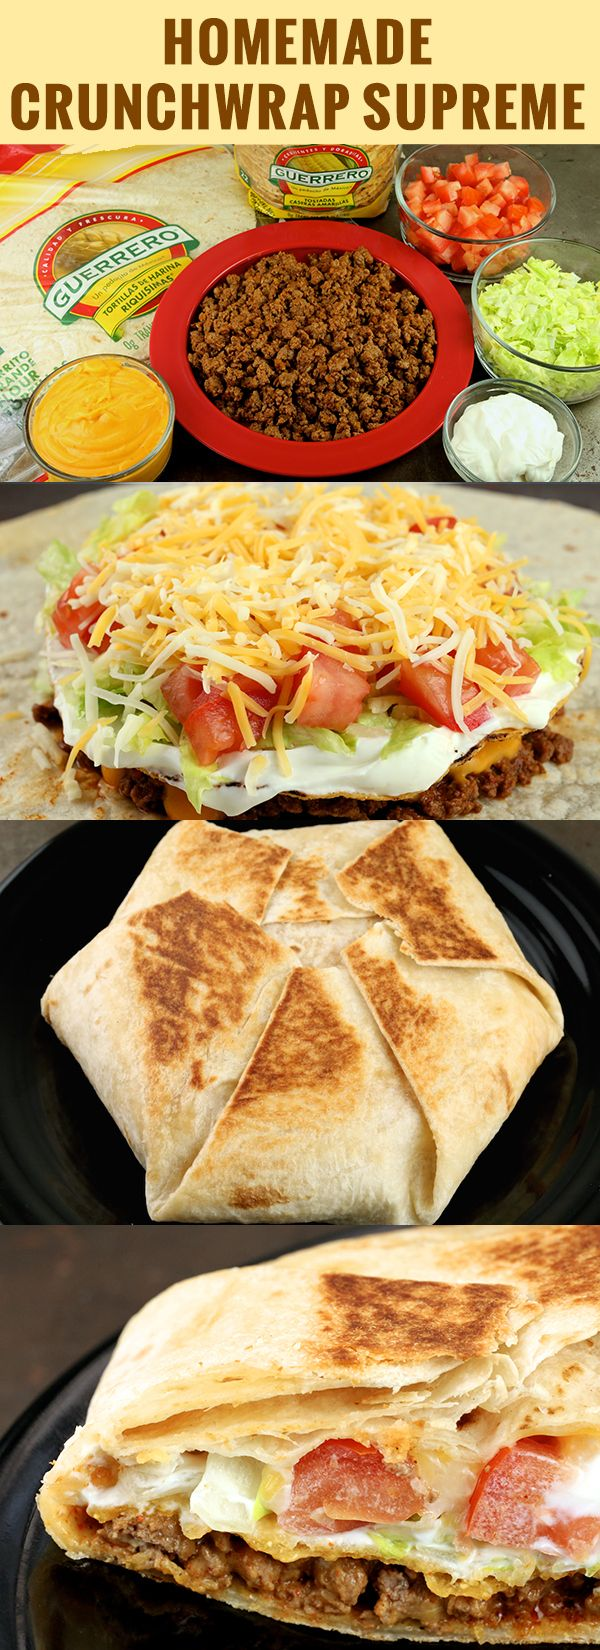 Homemade Crunchwrap Supreme Recipe • Perfect for On-the-Go Summer Road Trips